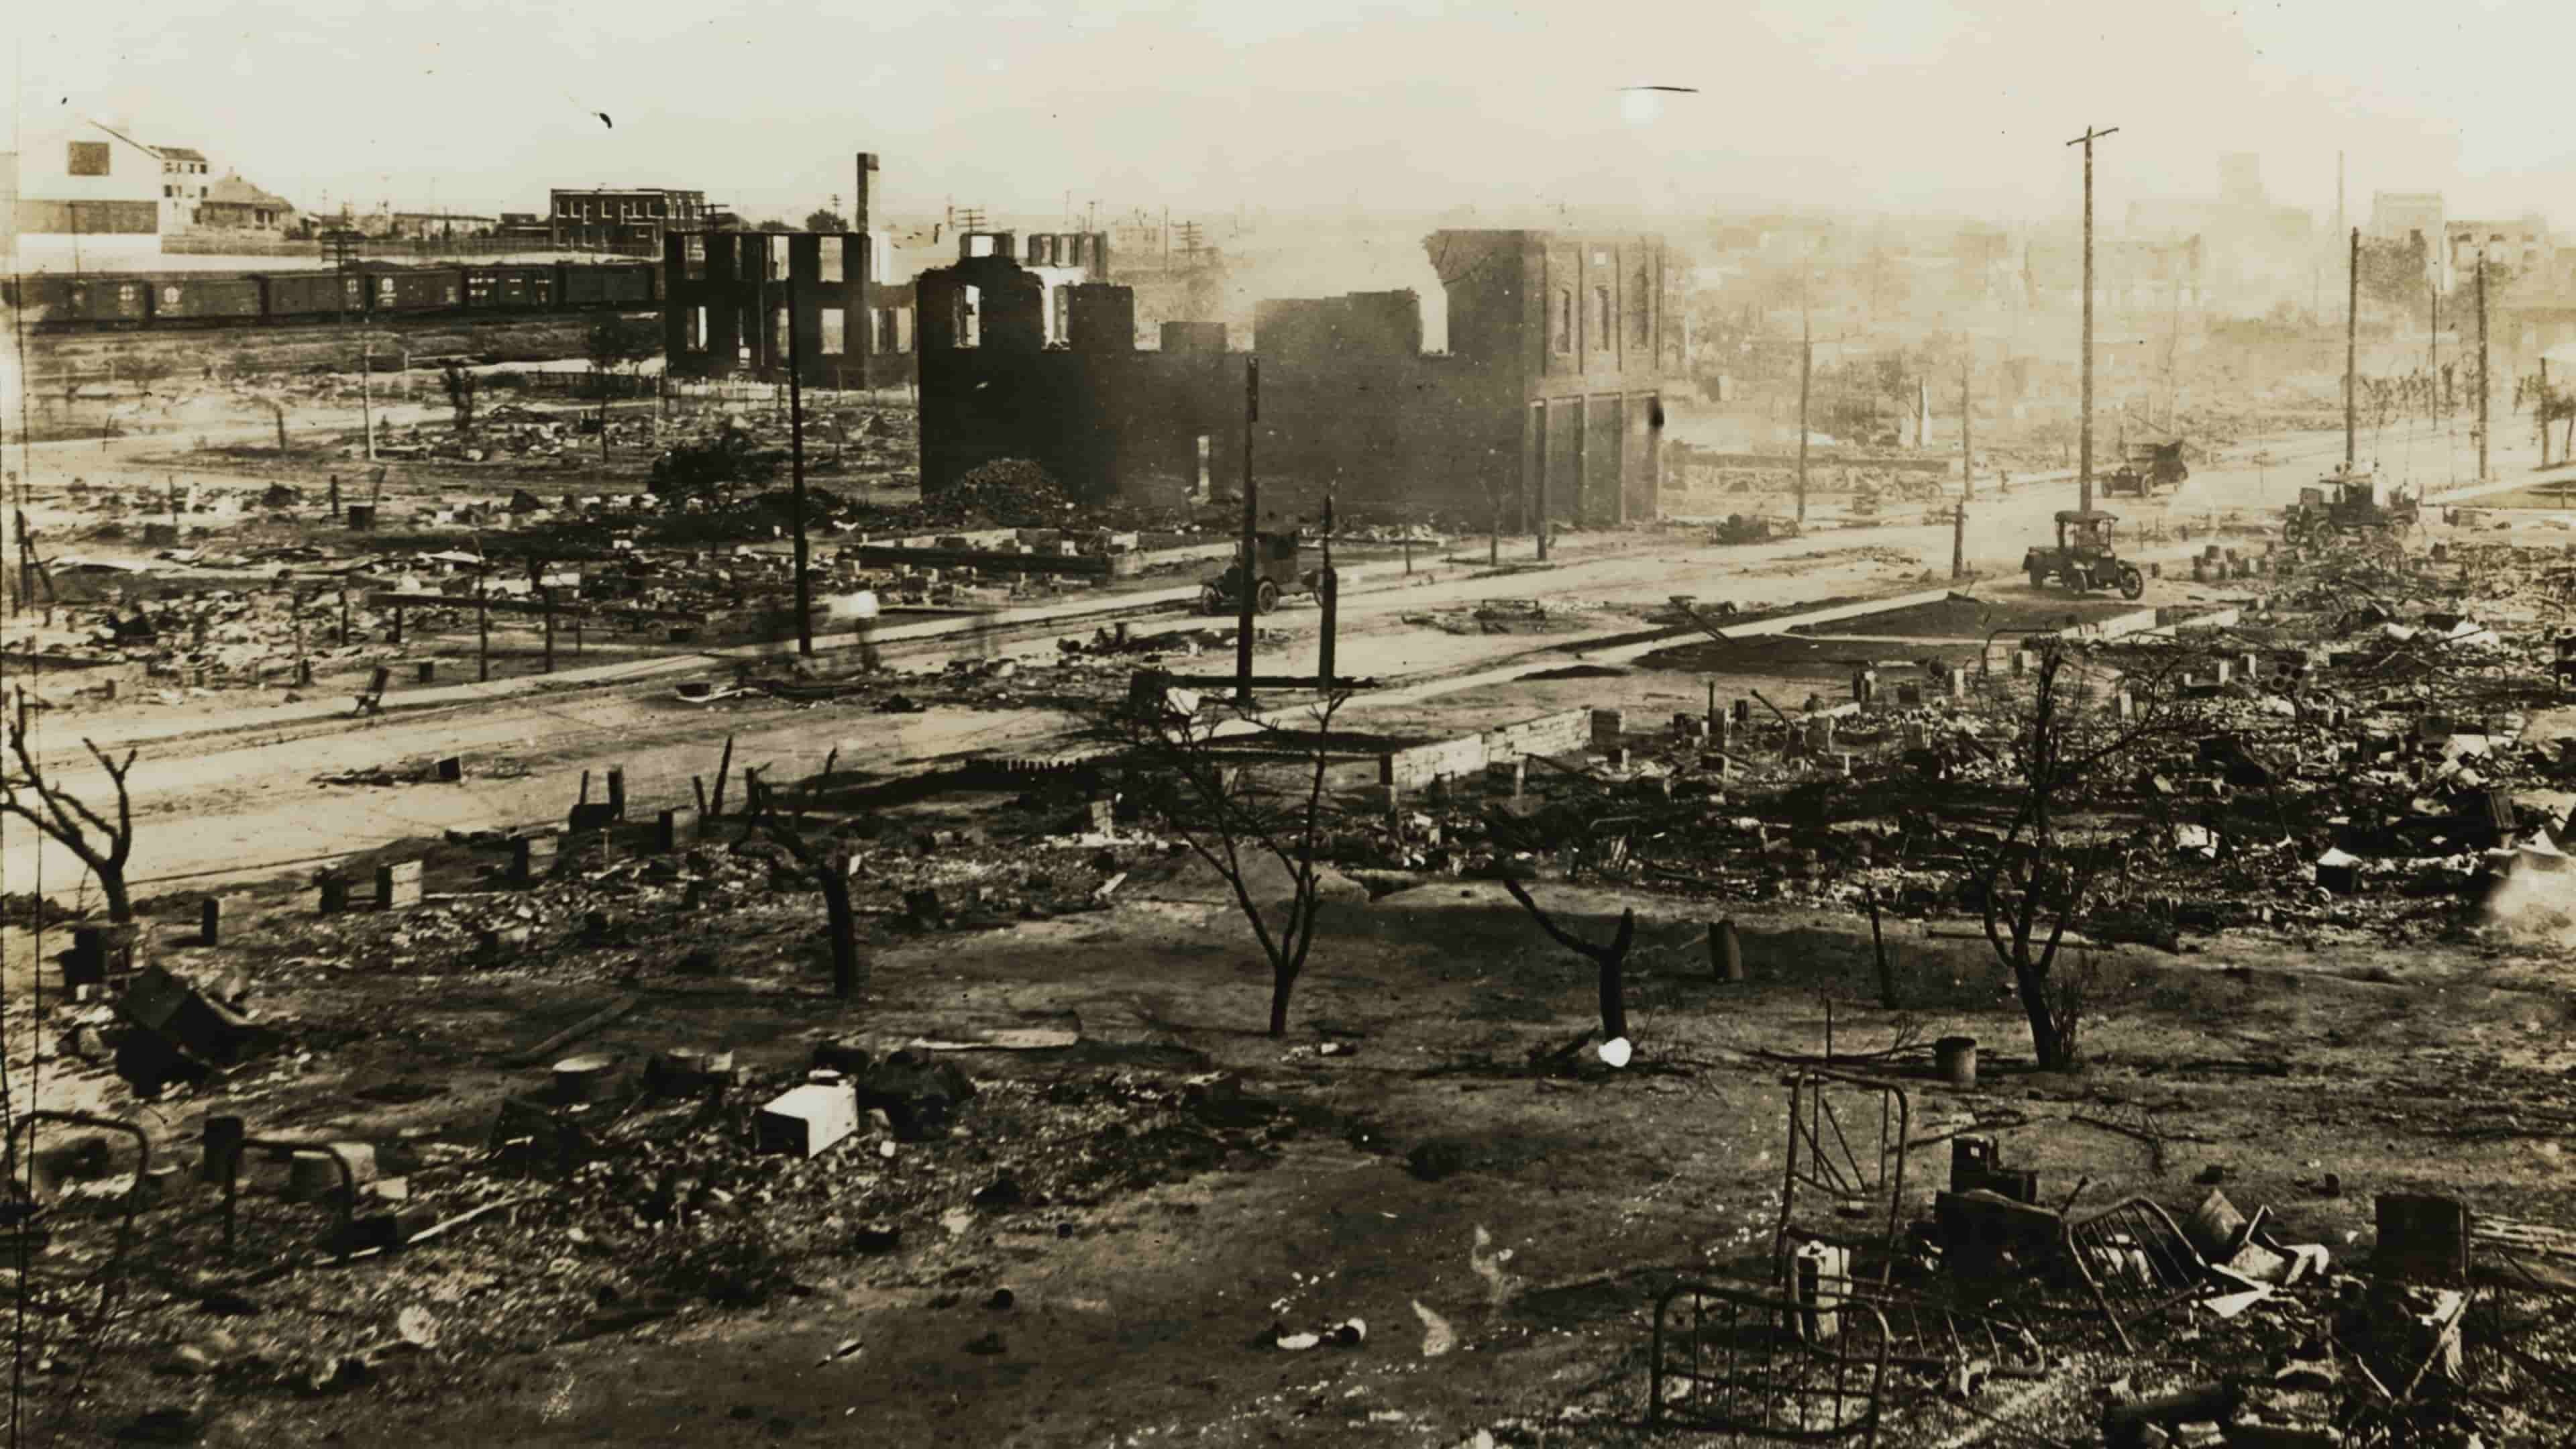 Dreamland: The Burning of Black Wall Street. Aerial-Greenwood aftermath. Photo Credit: Courtesy of Tulsa Historical Society/The Spring Hill Company for CNN Film